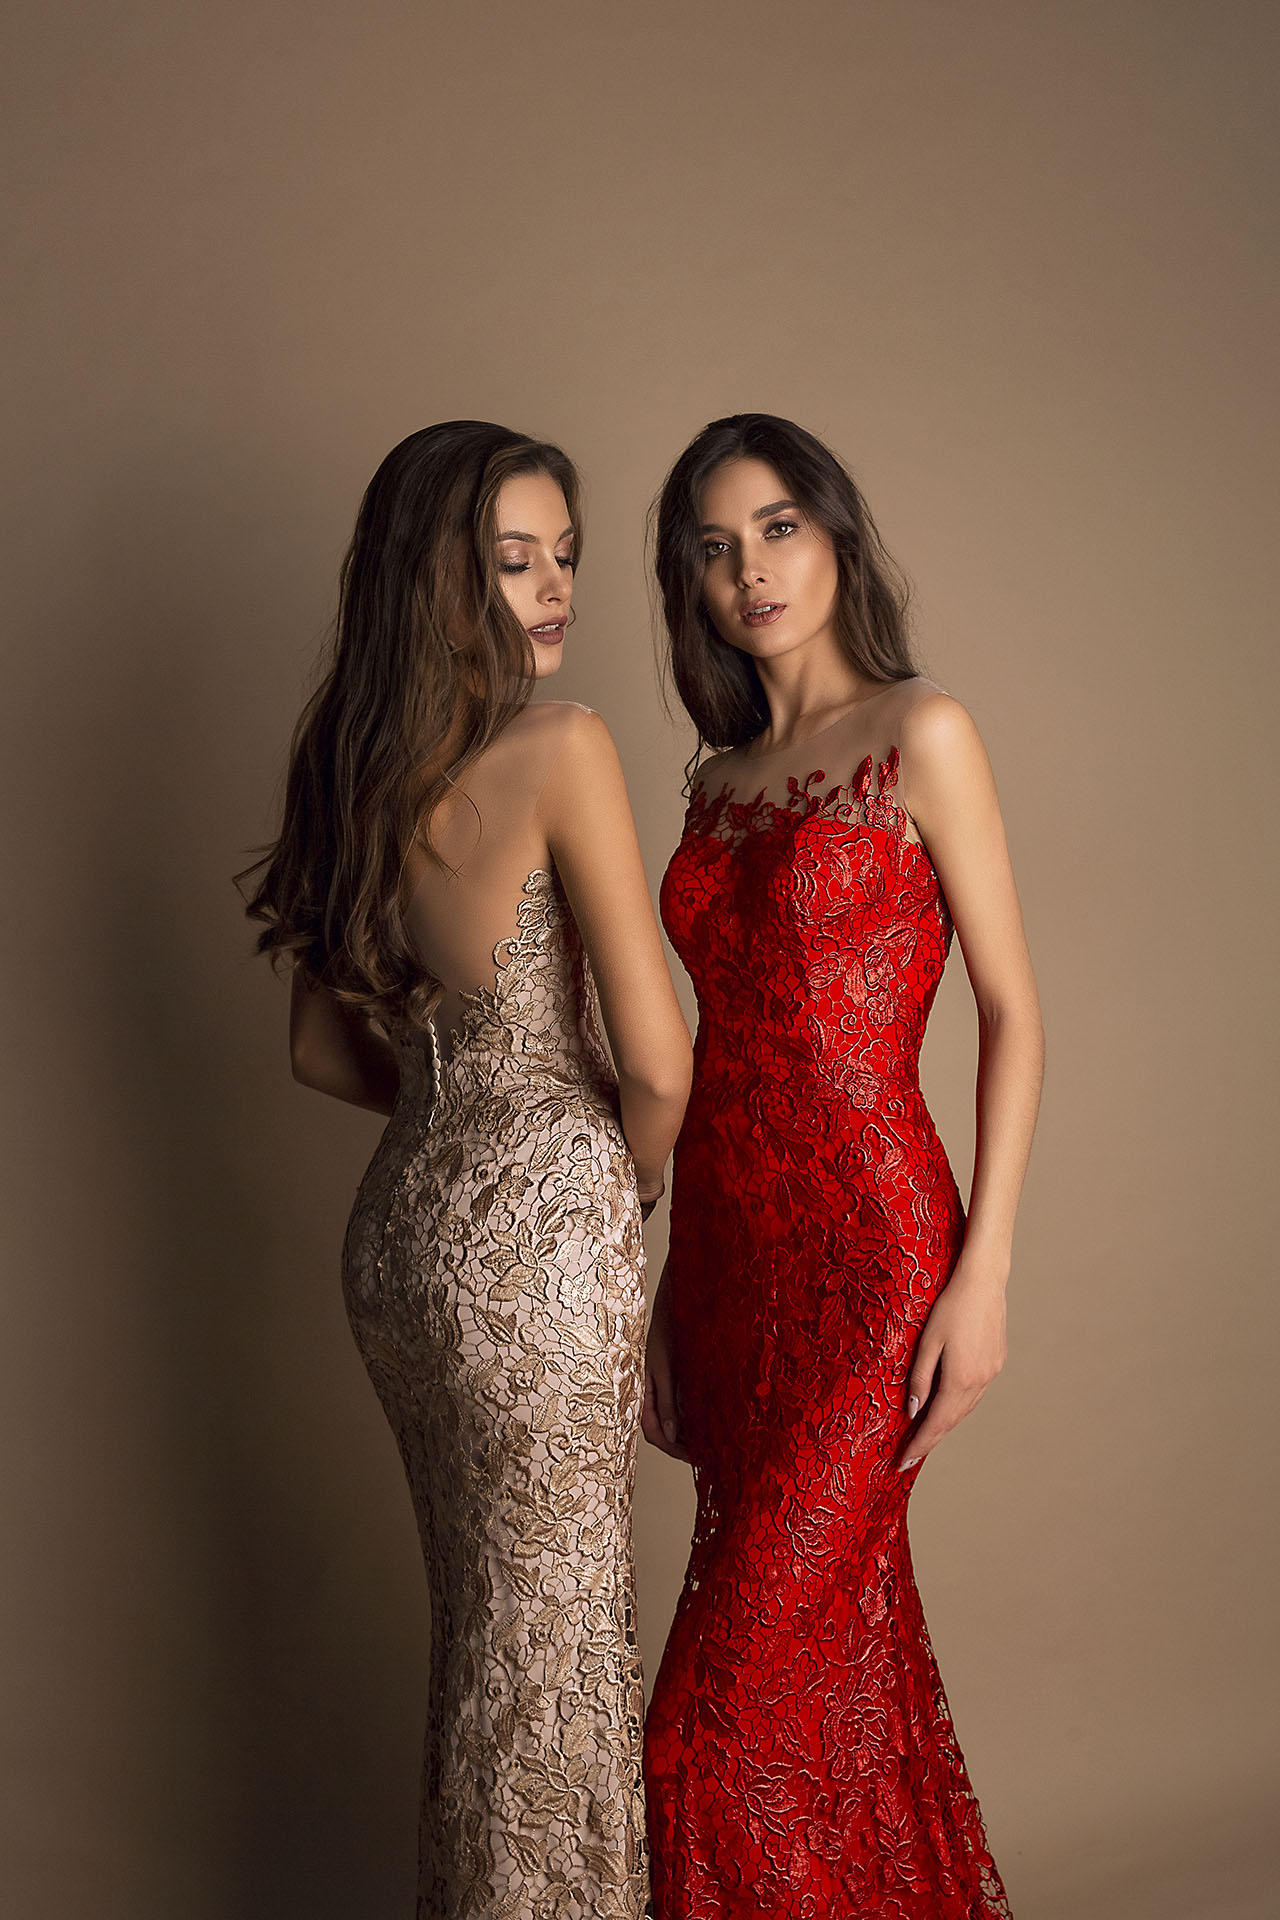 Evening gowns 1603 cappuccino Silhouette  Fitted  Color  Cappuccino  Red  Neckline  Sweetheart  Illusion  Sleeves  Sleeveless  Train  No train - foto 2